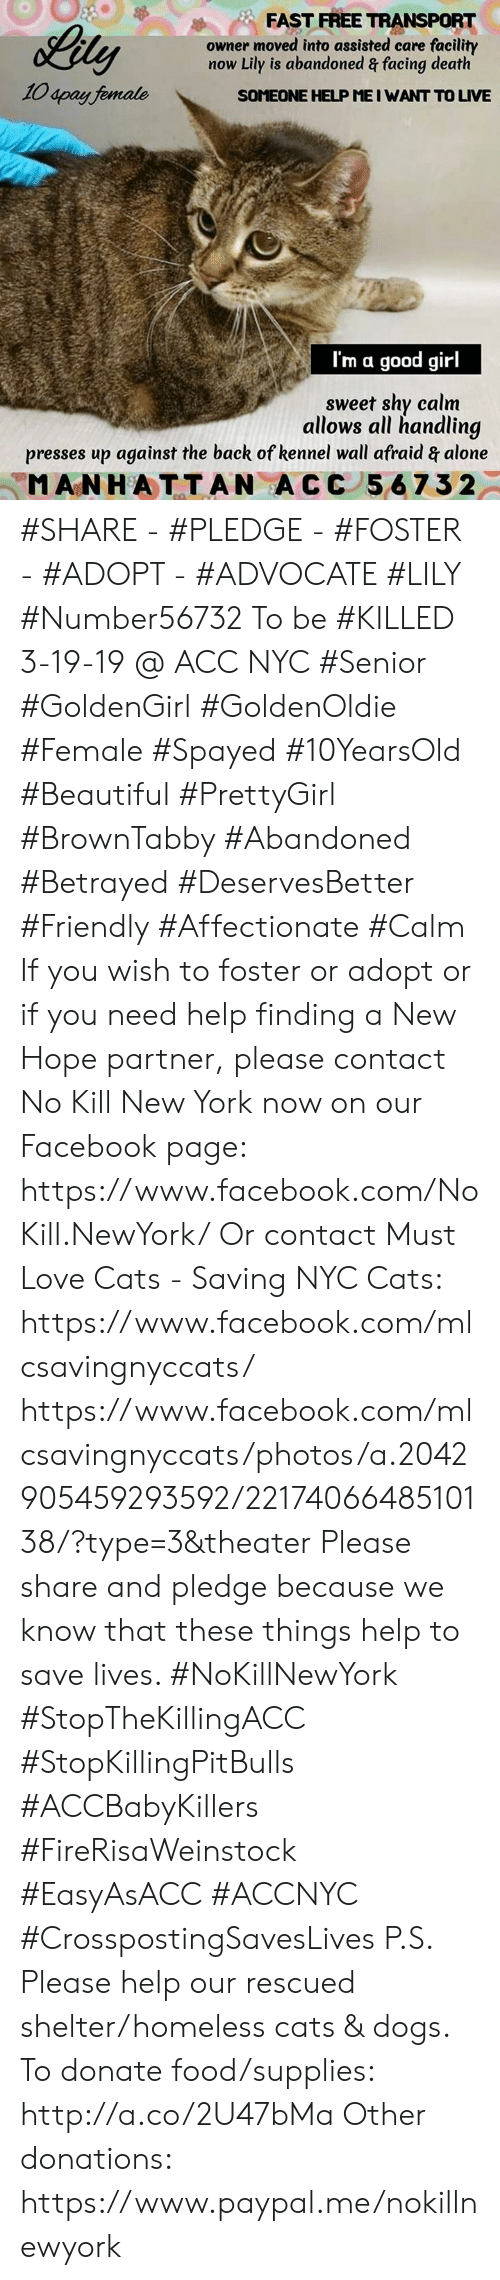 Being Alone, Beautiful, and Cats: FAST FREE TRANSPORT  owner moved into assisted care facility  now Lily is abandoned & facing death  10 4pay female  SOMEONE HELP ME I WANT TO LIVE  I'm  good girl  sweet shy calm  allows all handling  presses up against the back of kennel wall afraid & alone  MANHATTAN A CC 567 32 #SHARE - #PLEDGE - #FOSTER - #ADOPT - #ADVOCATE  #LILY #Number56732 To be #KILLED 3-19-19 @ ACC NYC  #Senior #GoldenGirl #GoldenOldie #Female #Spayed #10YearsOld #Beautiful #PrettyGirl #BrownTabby #Abandoned #Betrayed #DeservesBetter #Friendly #Affectionate  #Calm   If you wish to foster or adopt or if you need help finding a New Hope partner, please contact No Kill New York now on our Facebook page:  https://www.facebook.com/NoKill.NewYork/  Or contact Must Love Cats - Saving NYC Cats:  https://www.facebook.com/mlcsavingnyccats/  https://www.facebook.com/mlcsavingnyccats/photos/a.2042905459293592/2217406648510138/?type=3&theater  Please share and pledge because we know that these things help to save lives. #NoKillNewYork #StopTheKillingACC #StopKillingPitBulls #ACCBabyKillers #FireRisaWeinstock #EasyAsACC #ACCNYC #CrosspostingSavesLives  P.S. Please help our rescued shelter/homeless cats & dogs.  To donate food/supplies: http://a.co/2U47bMa  Other donations: https://www.paypal.me/nokillnewyork